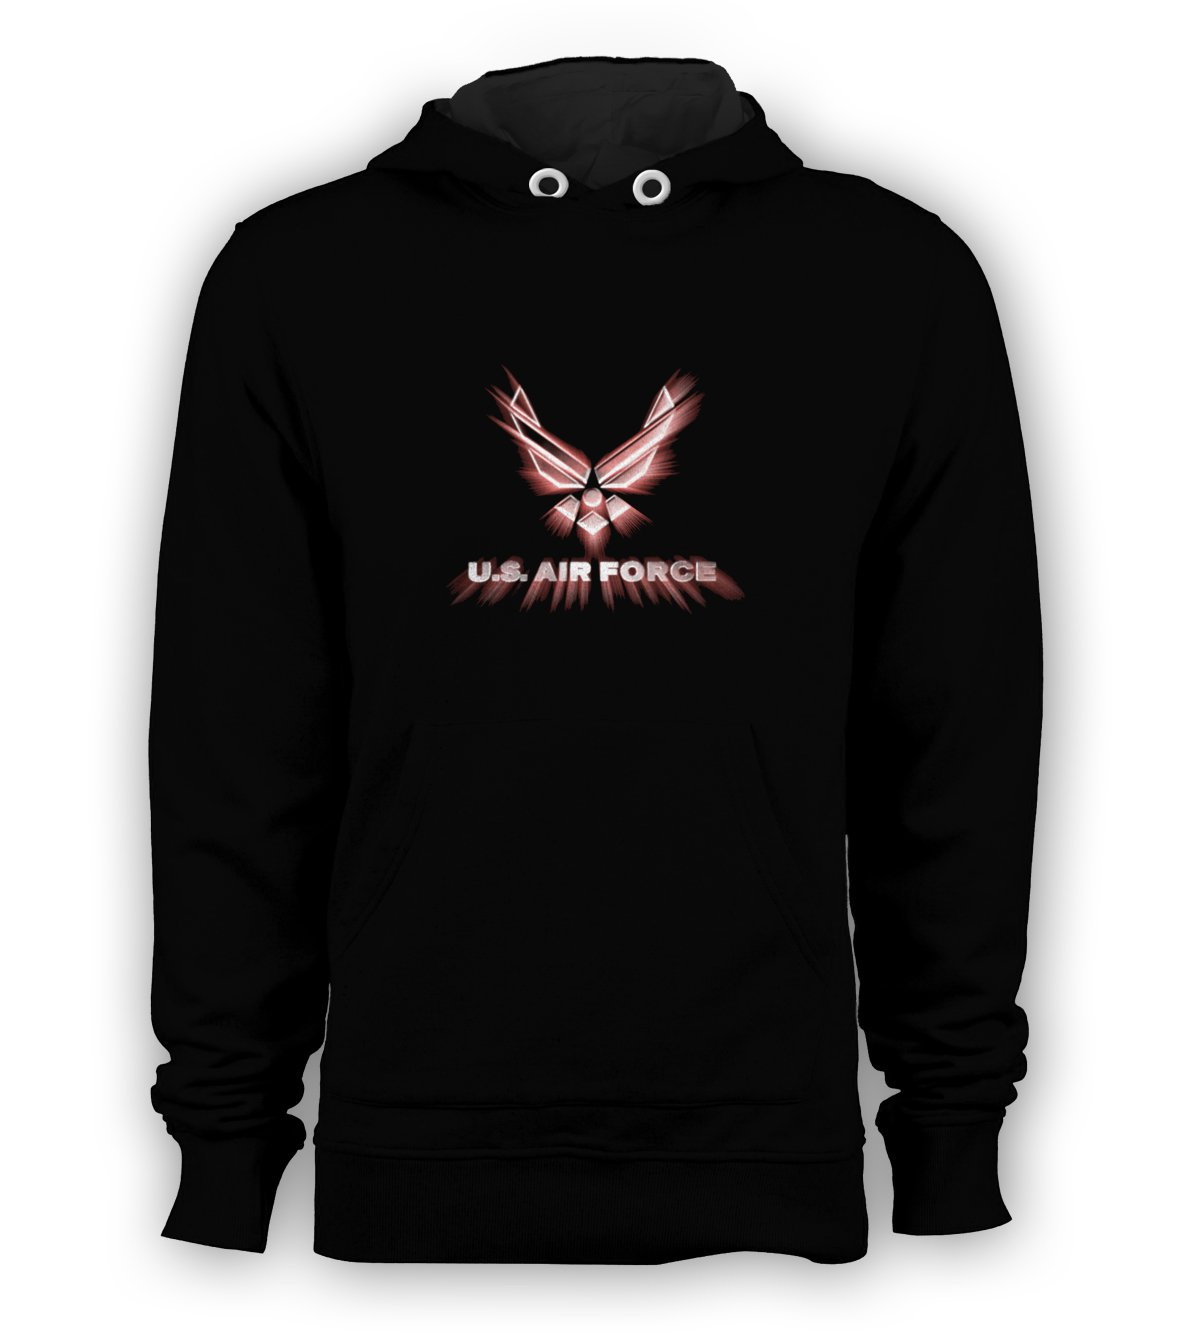 US Air Force Pullover Hoodie Men Sweatshirts Size S to 3XL New Black